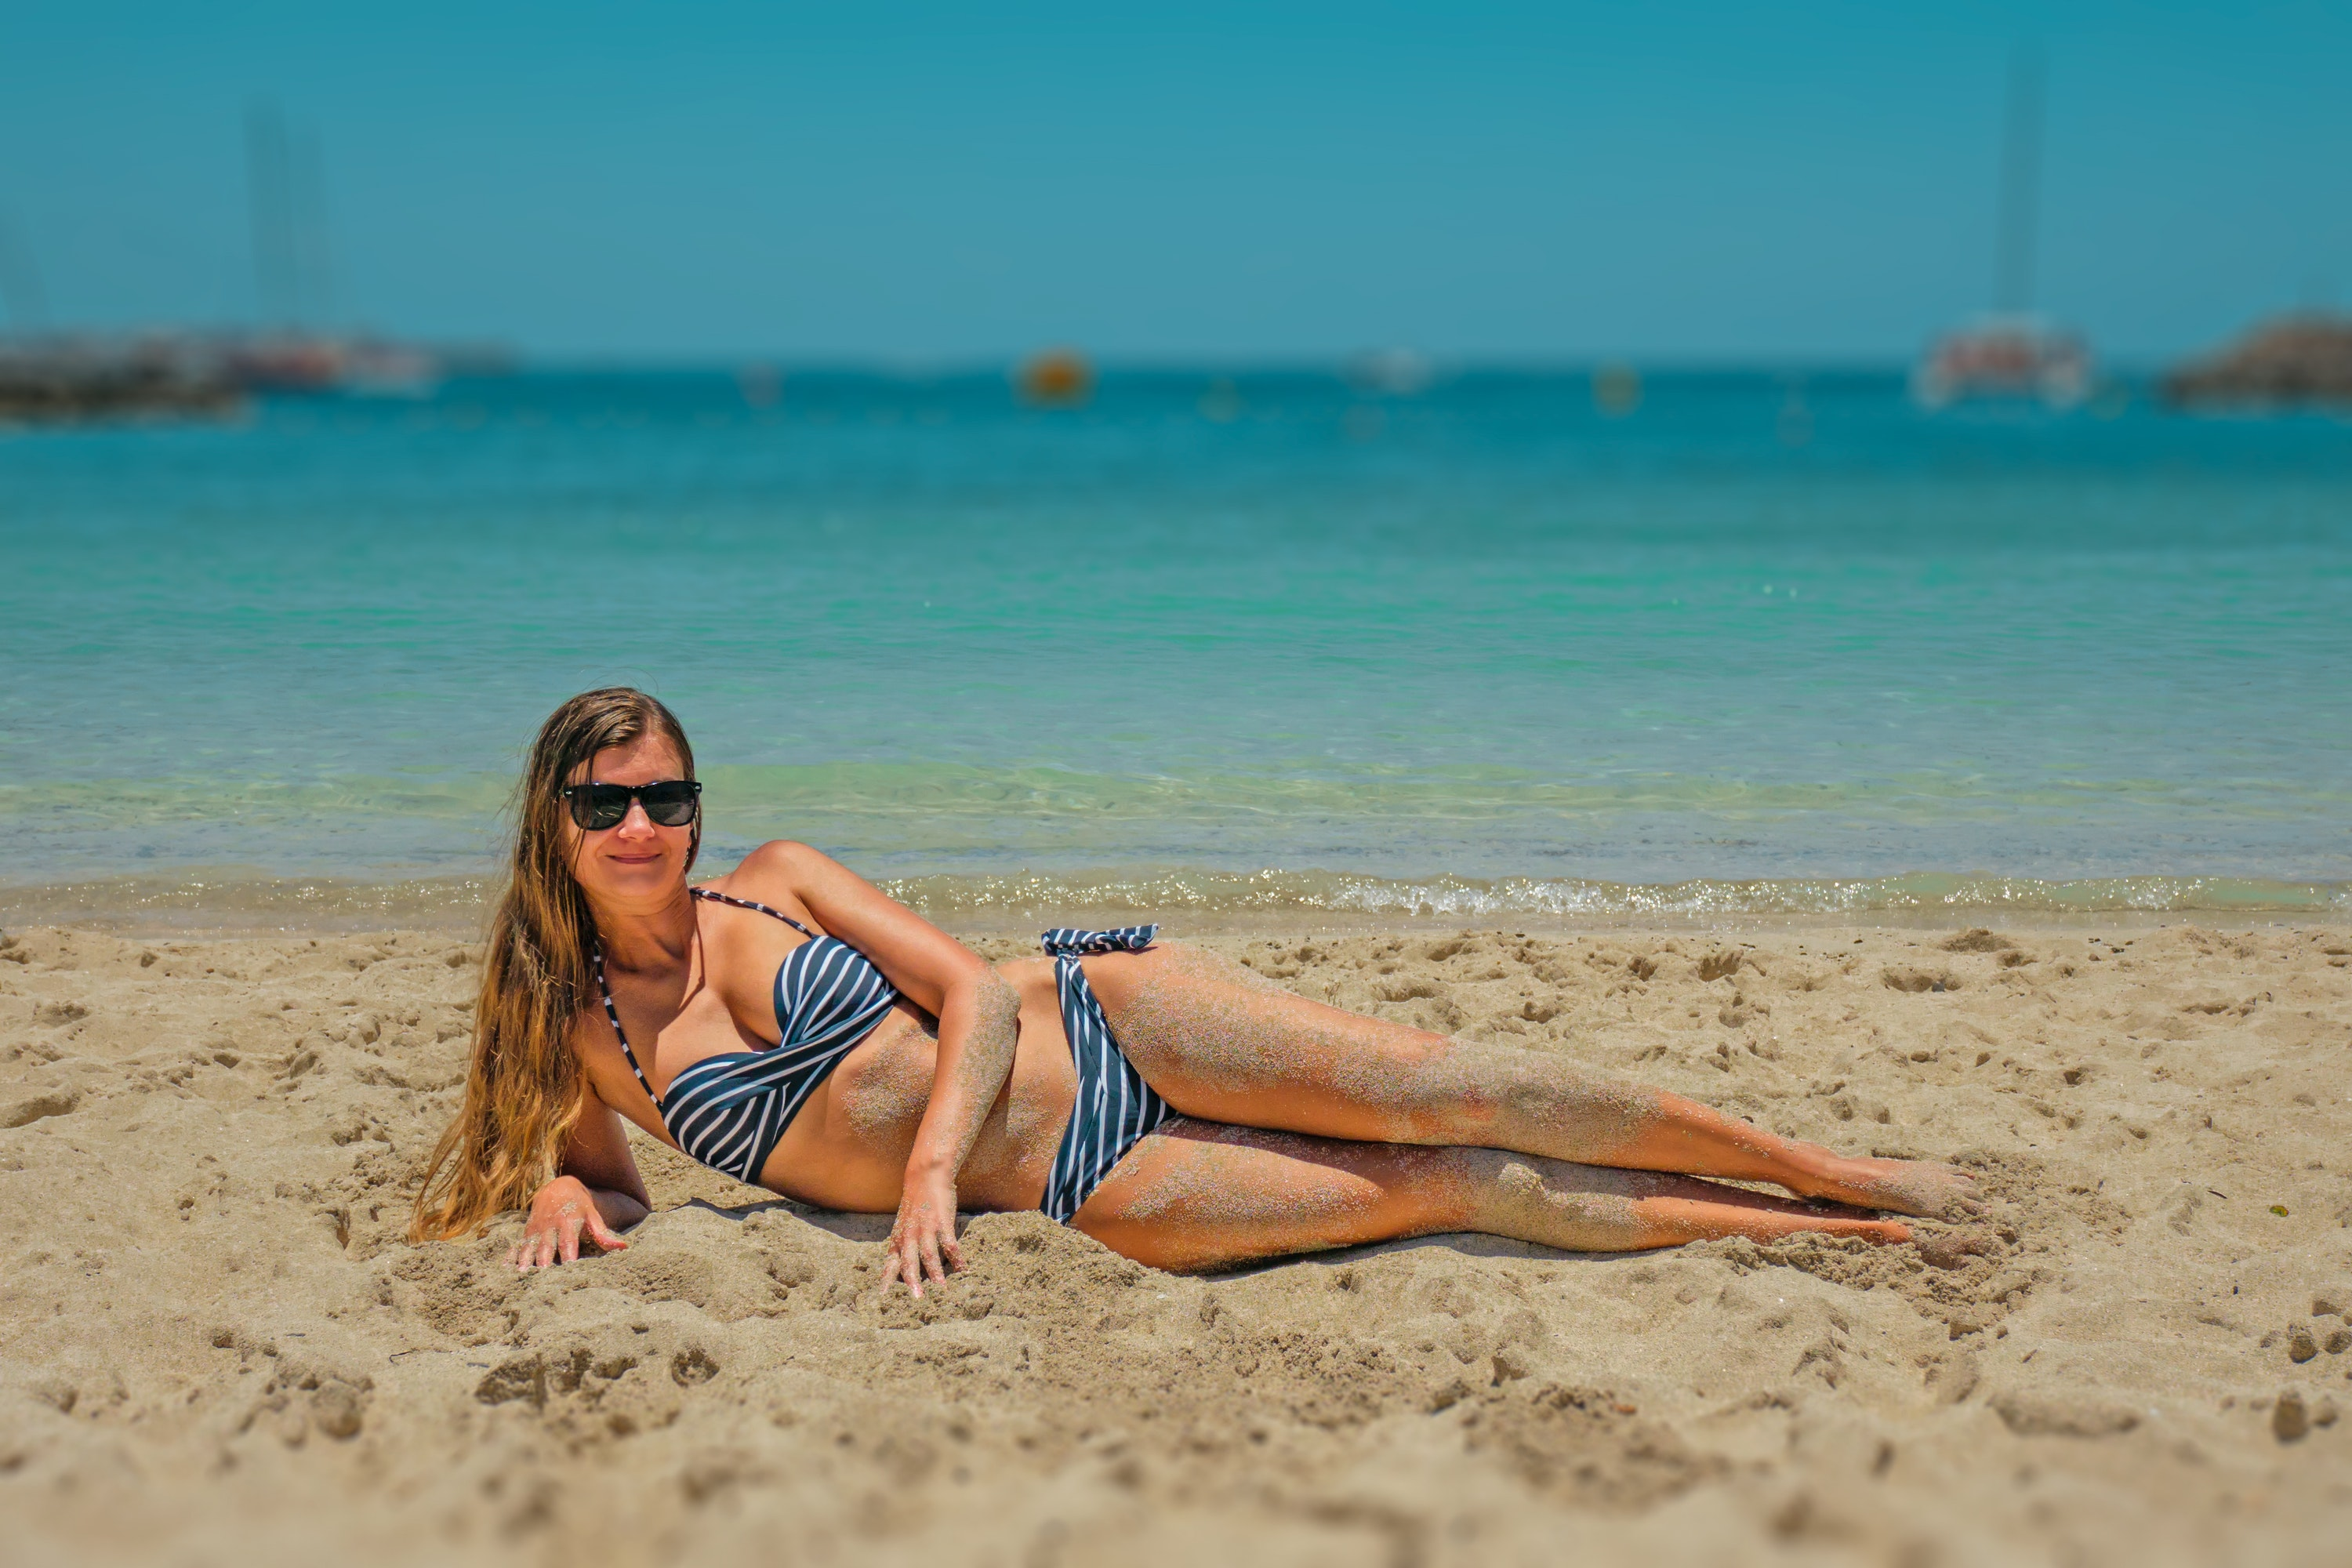 Woman in Blue and Black Bikini Lying on Beach Sand · Free Stock Photo